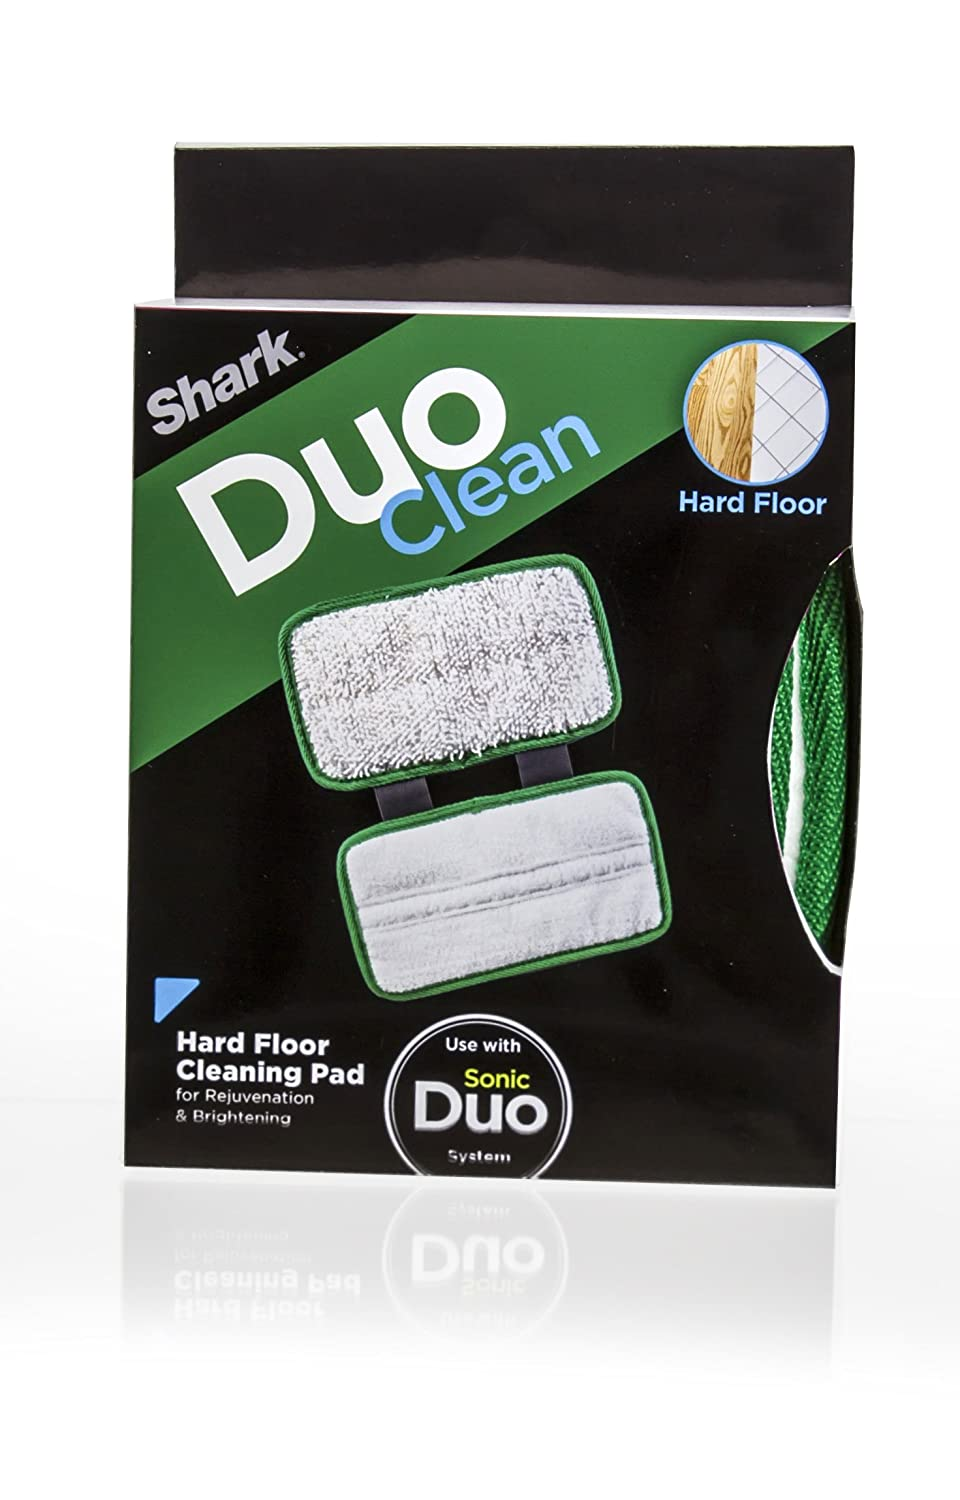 Shark Wood & Hard Floor Washable Cleaning Pad for Use Sonic Duo System (XTRU800)